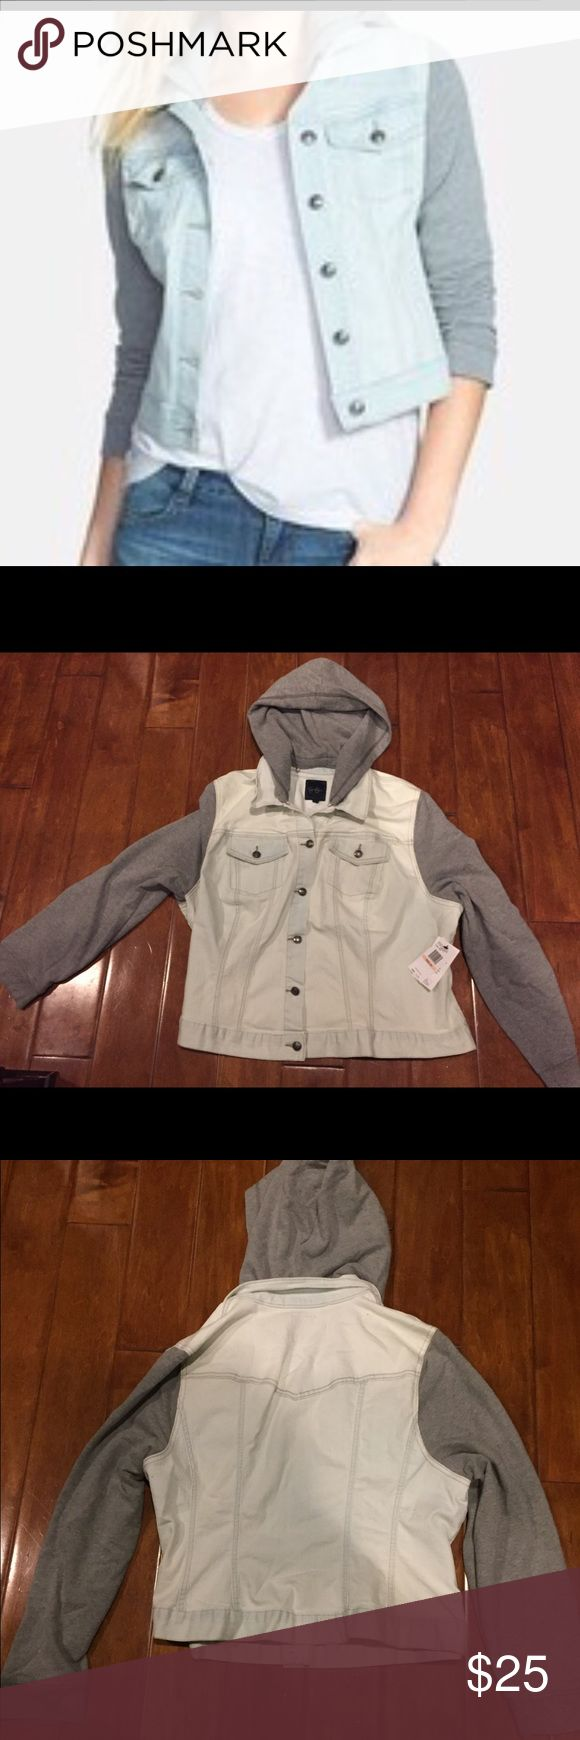 Jessica Simpson Plus Hooded Jean Jacket Size 2xl. New with tags! Jessica Simpson Jackets & Coats Jean Jackets